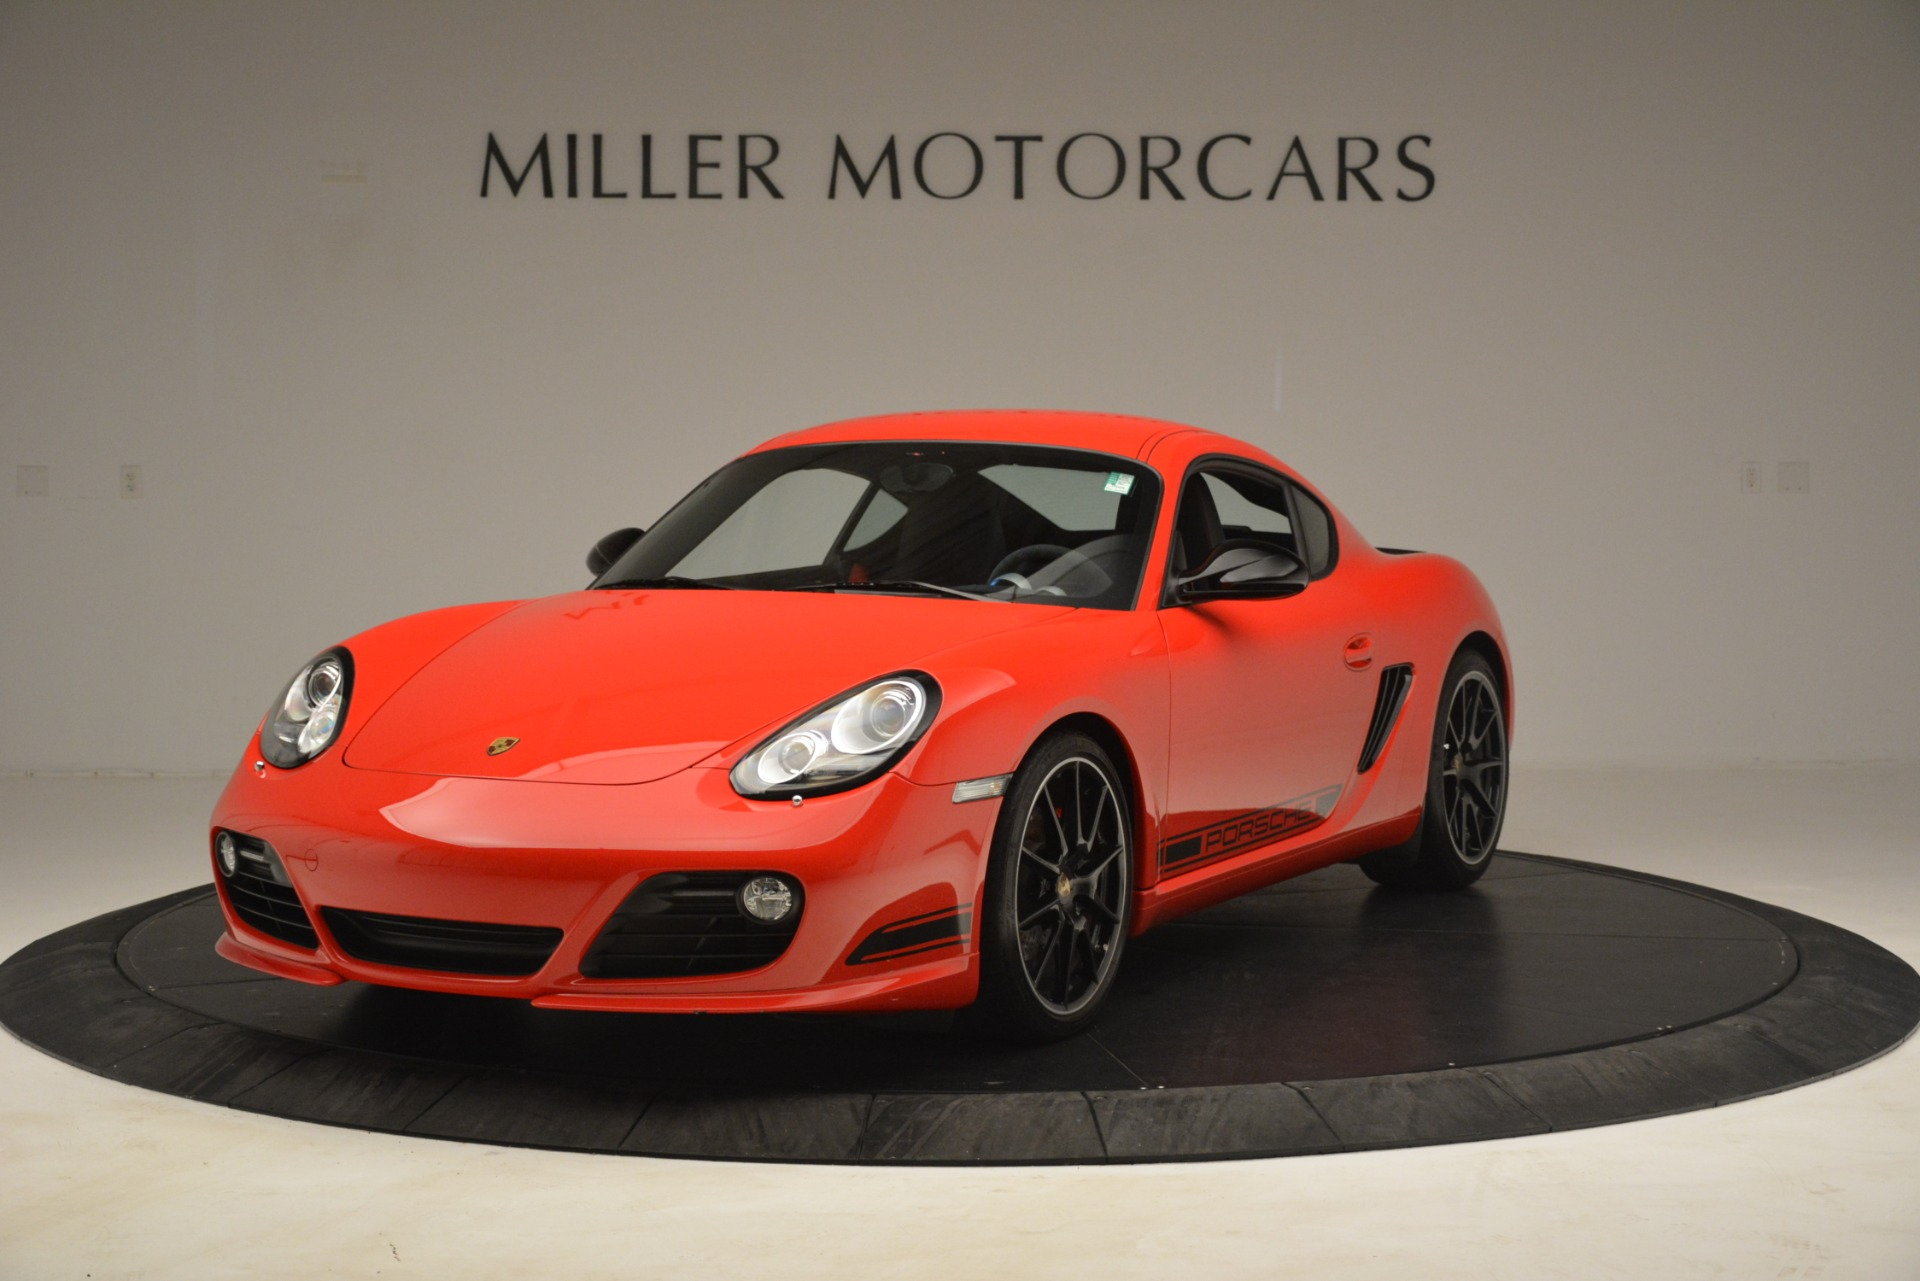 Used 2012 Porsche Cayman R for sale Sold at Maserati of Westport in Westport CT 06880 1